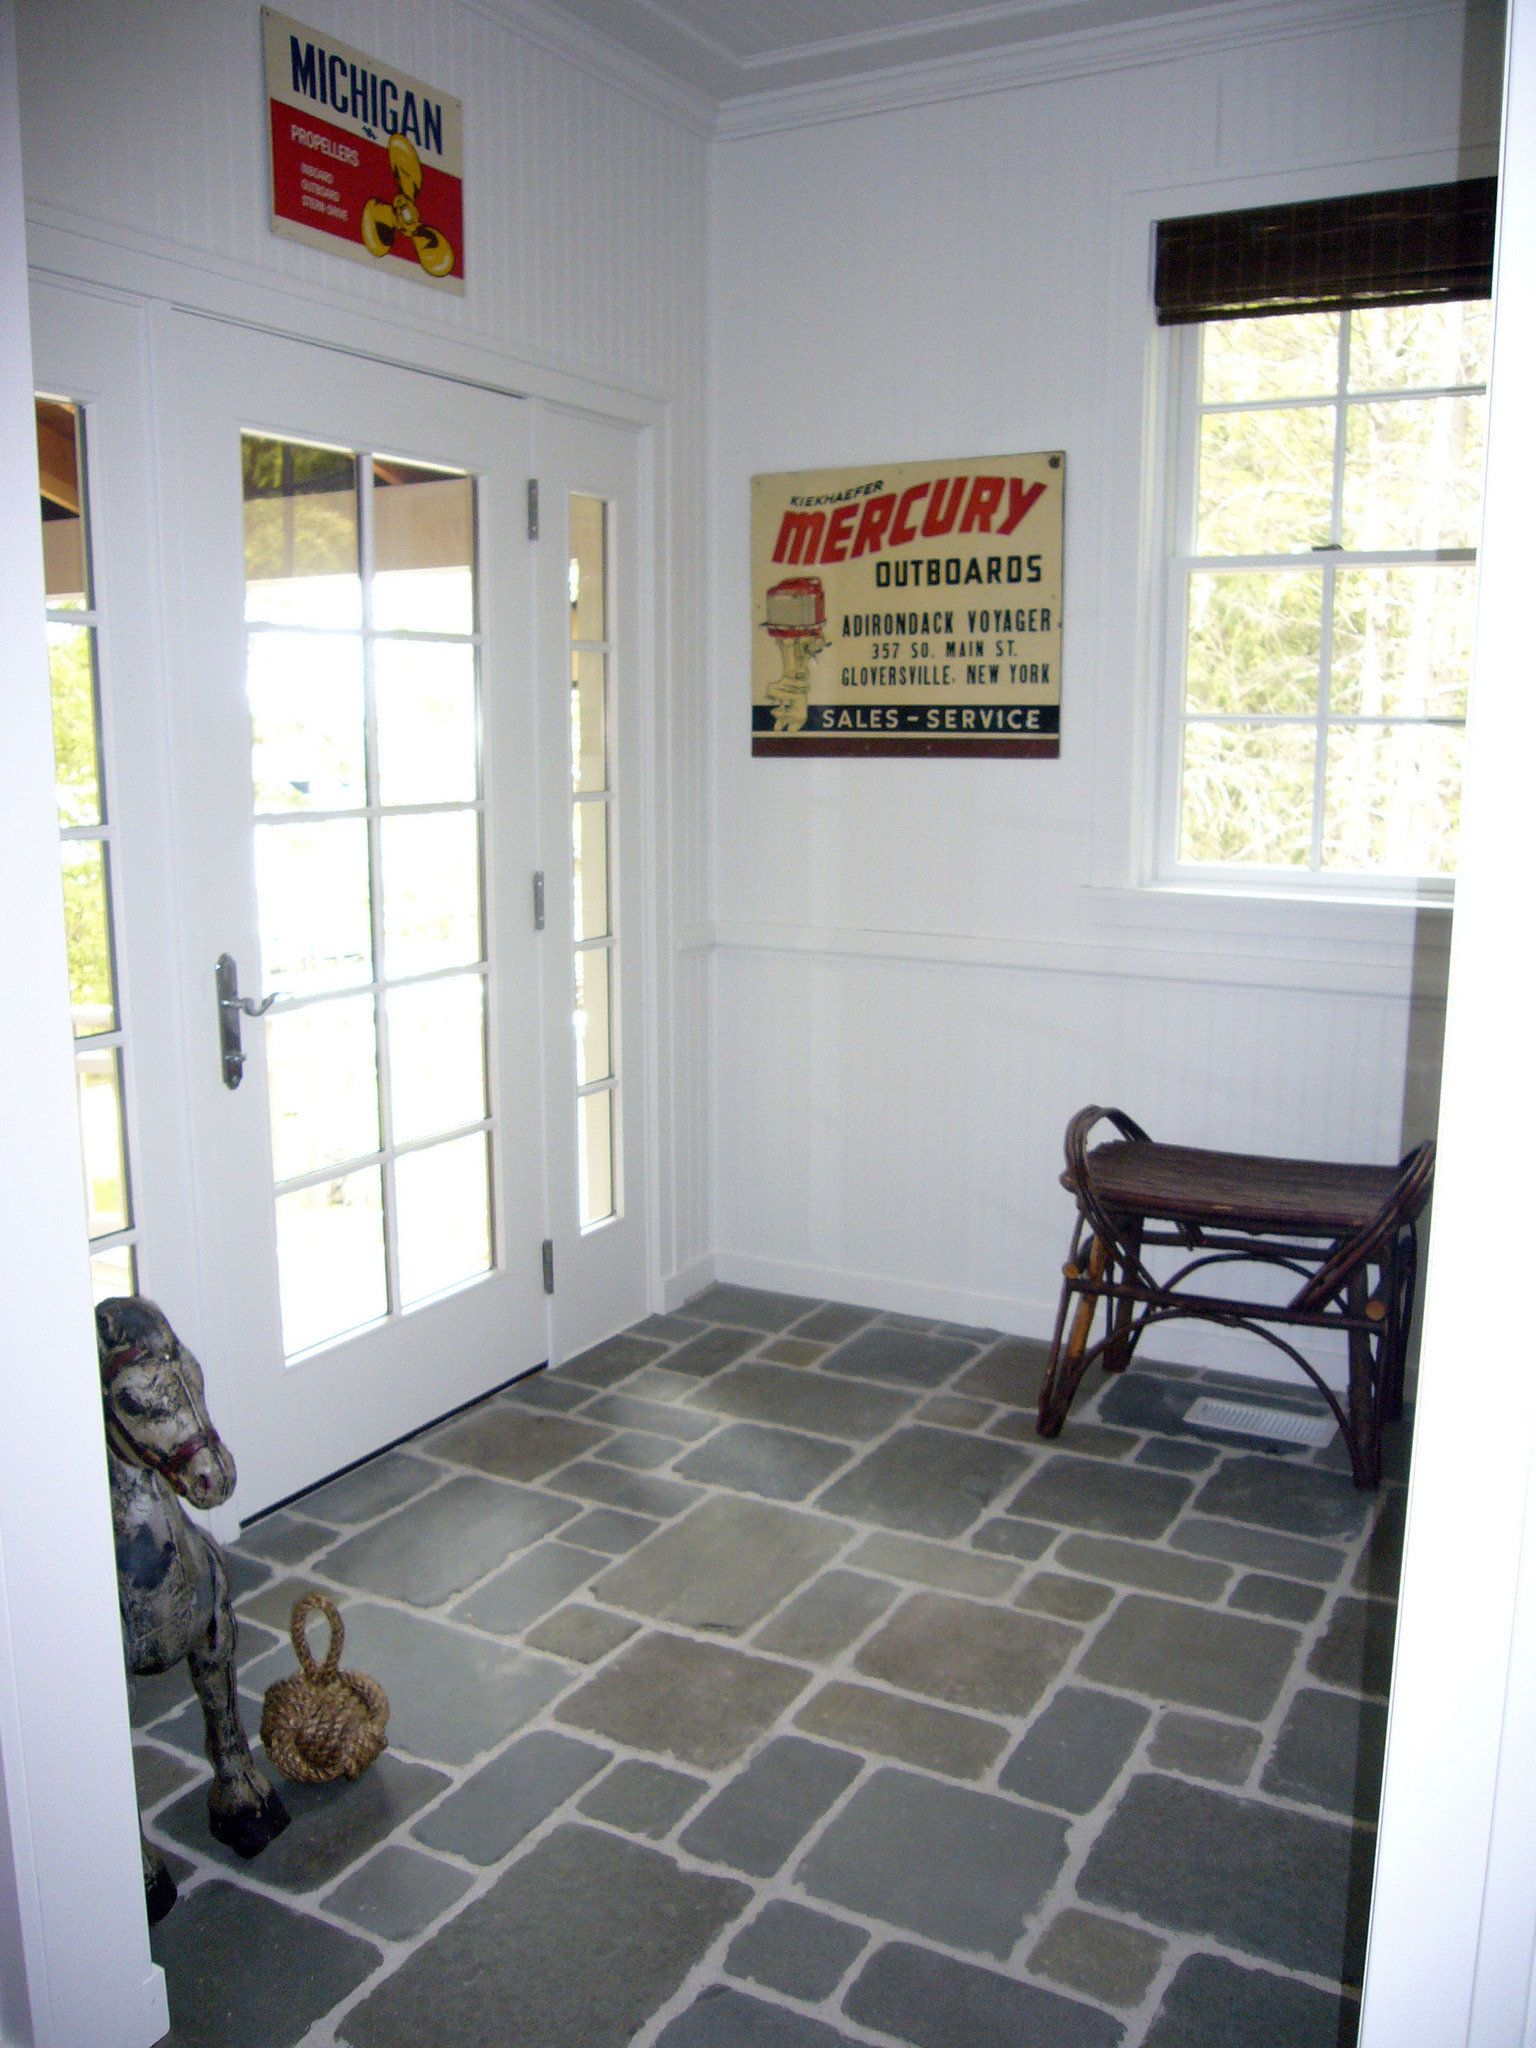 Small inside entry for colonials pros offer tips on durable pros offer tips on durable easy to clean entryway flooring that doesnt skimp on style dailygadgetfo Images